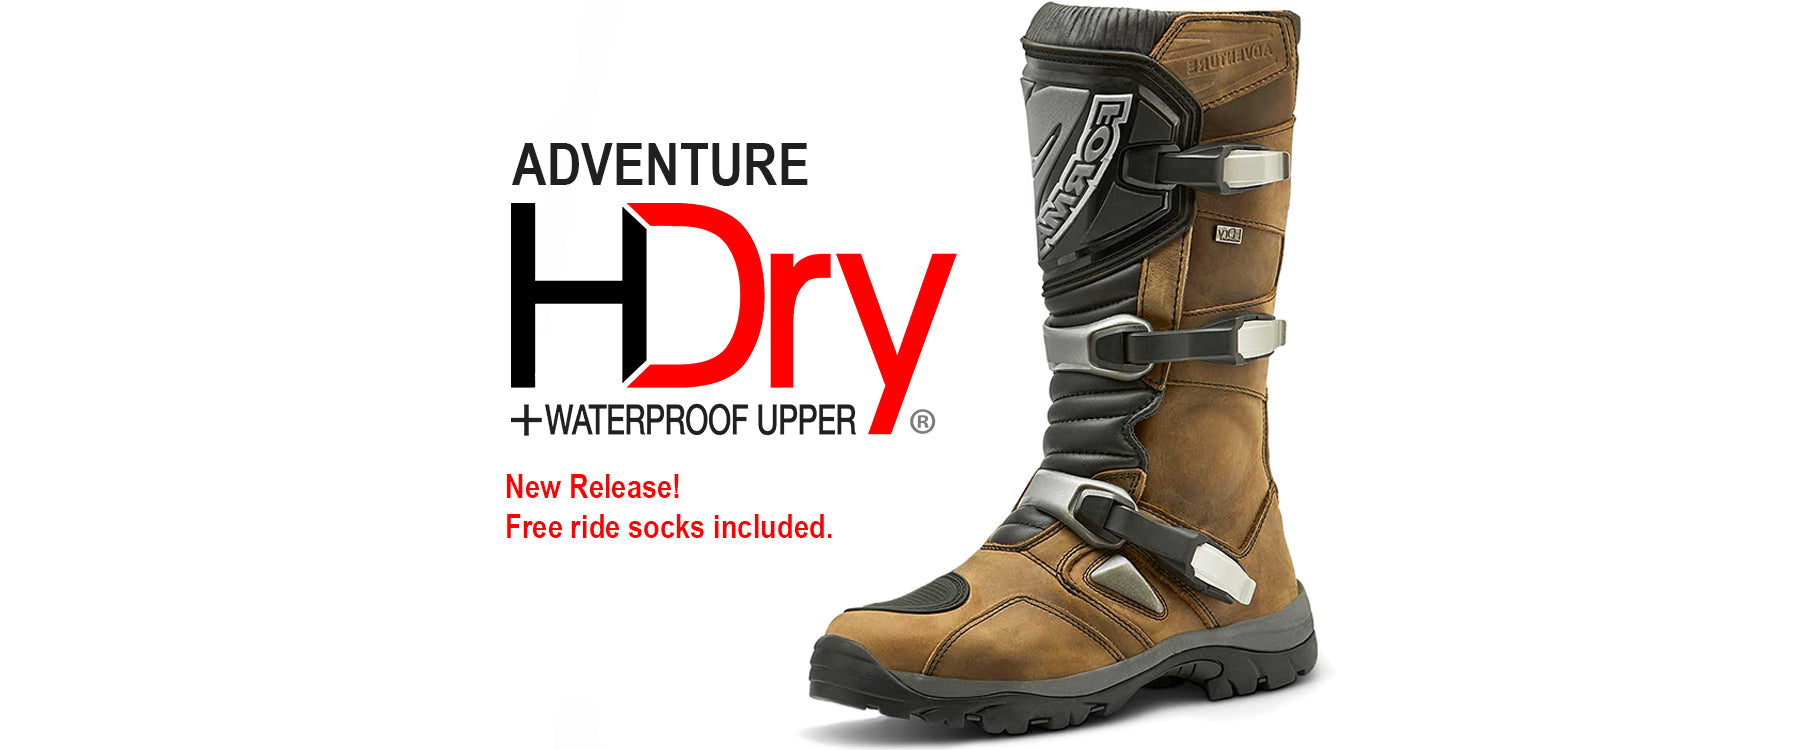 Forma boots adventure HDry motorcycle adv riding home usa canada world support home